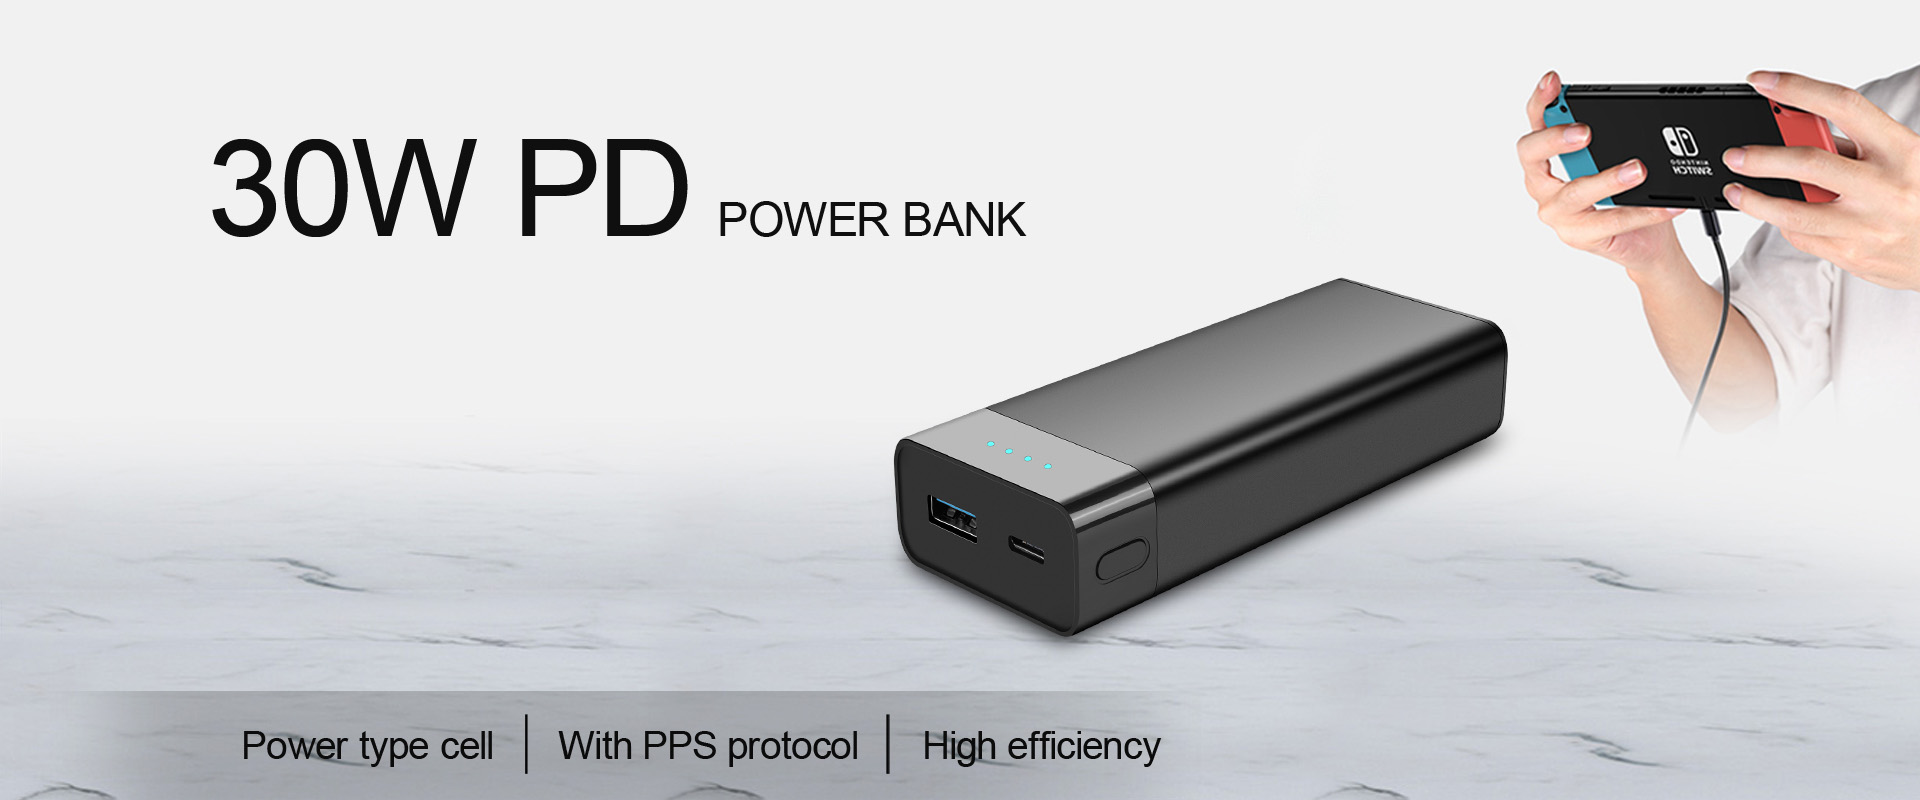 30w pd power bank